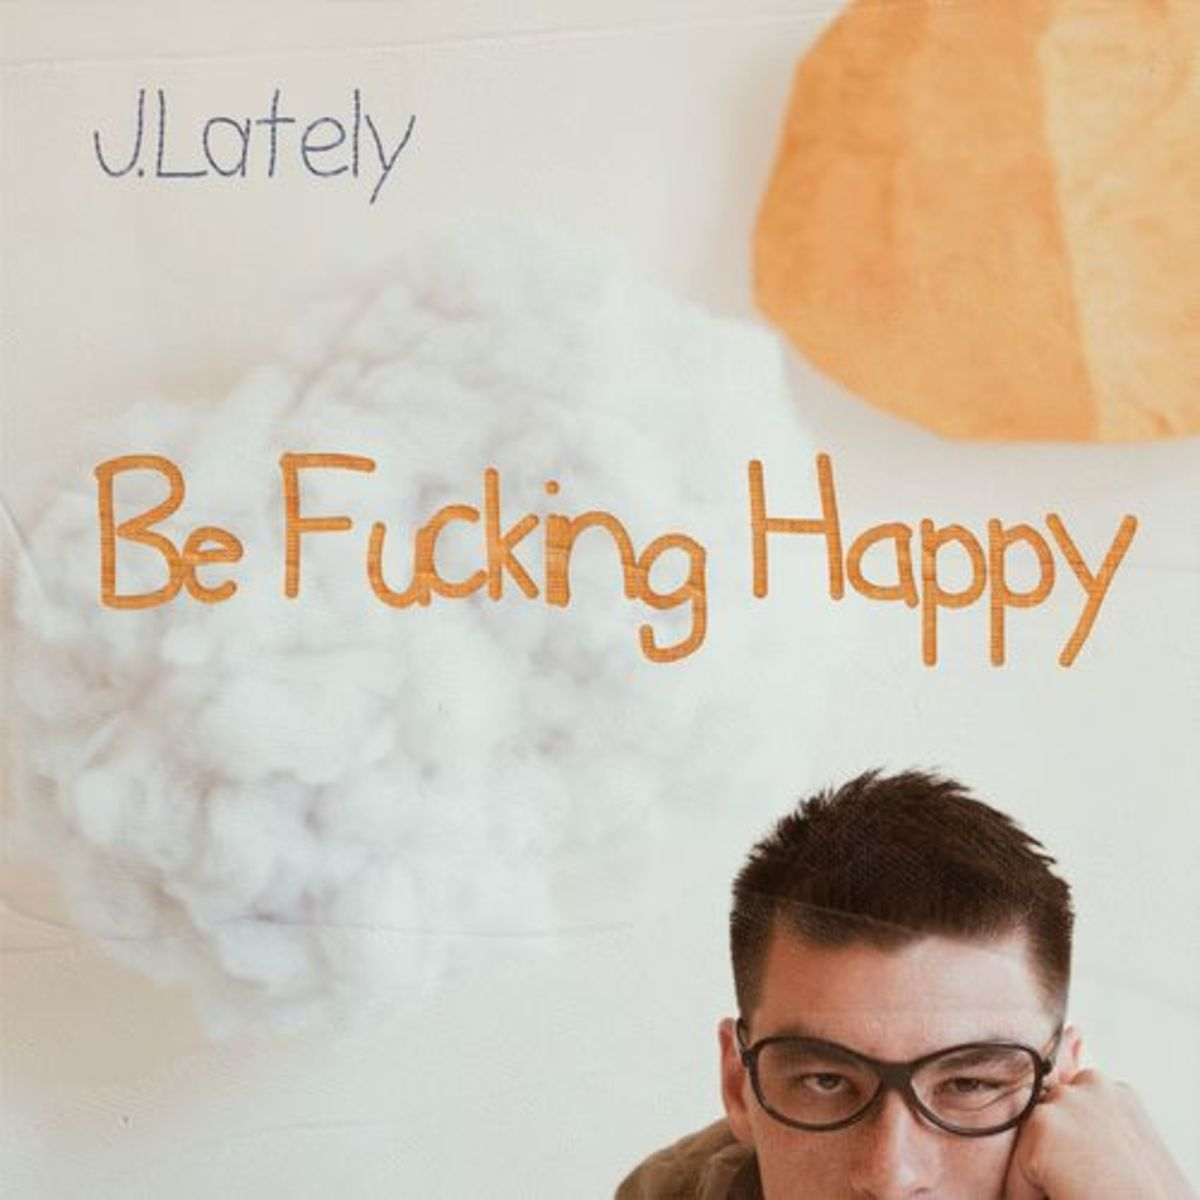 jlately-be-fcking-happy.jpg